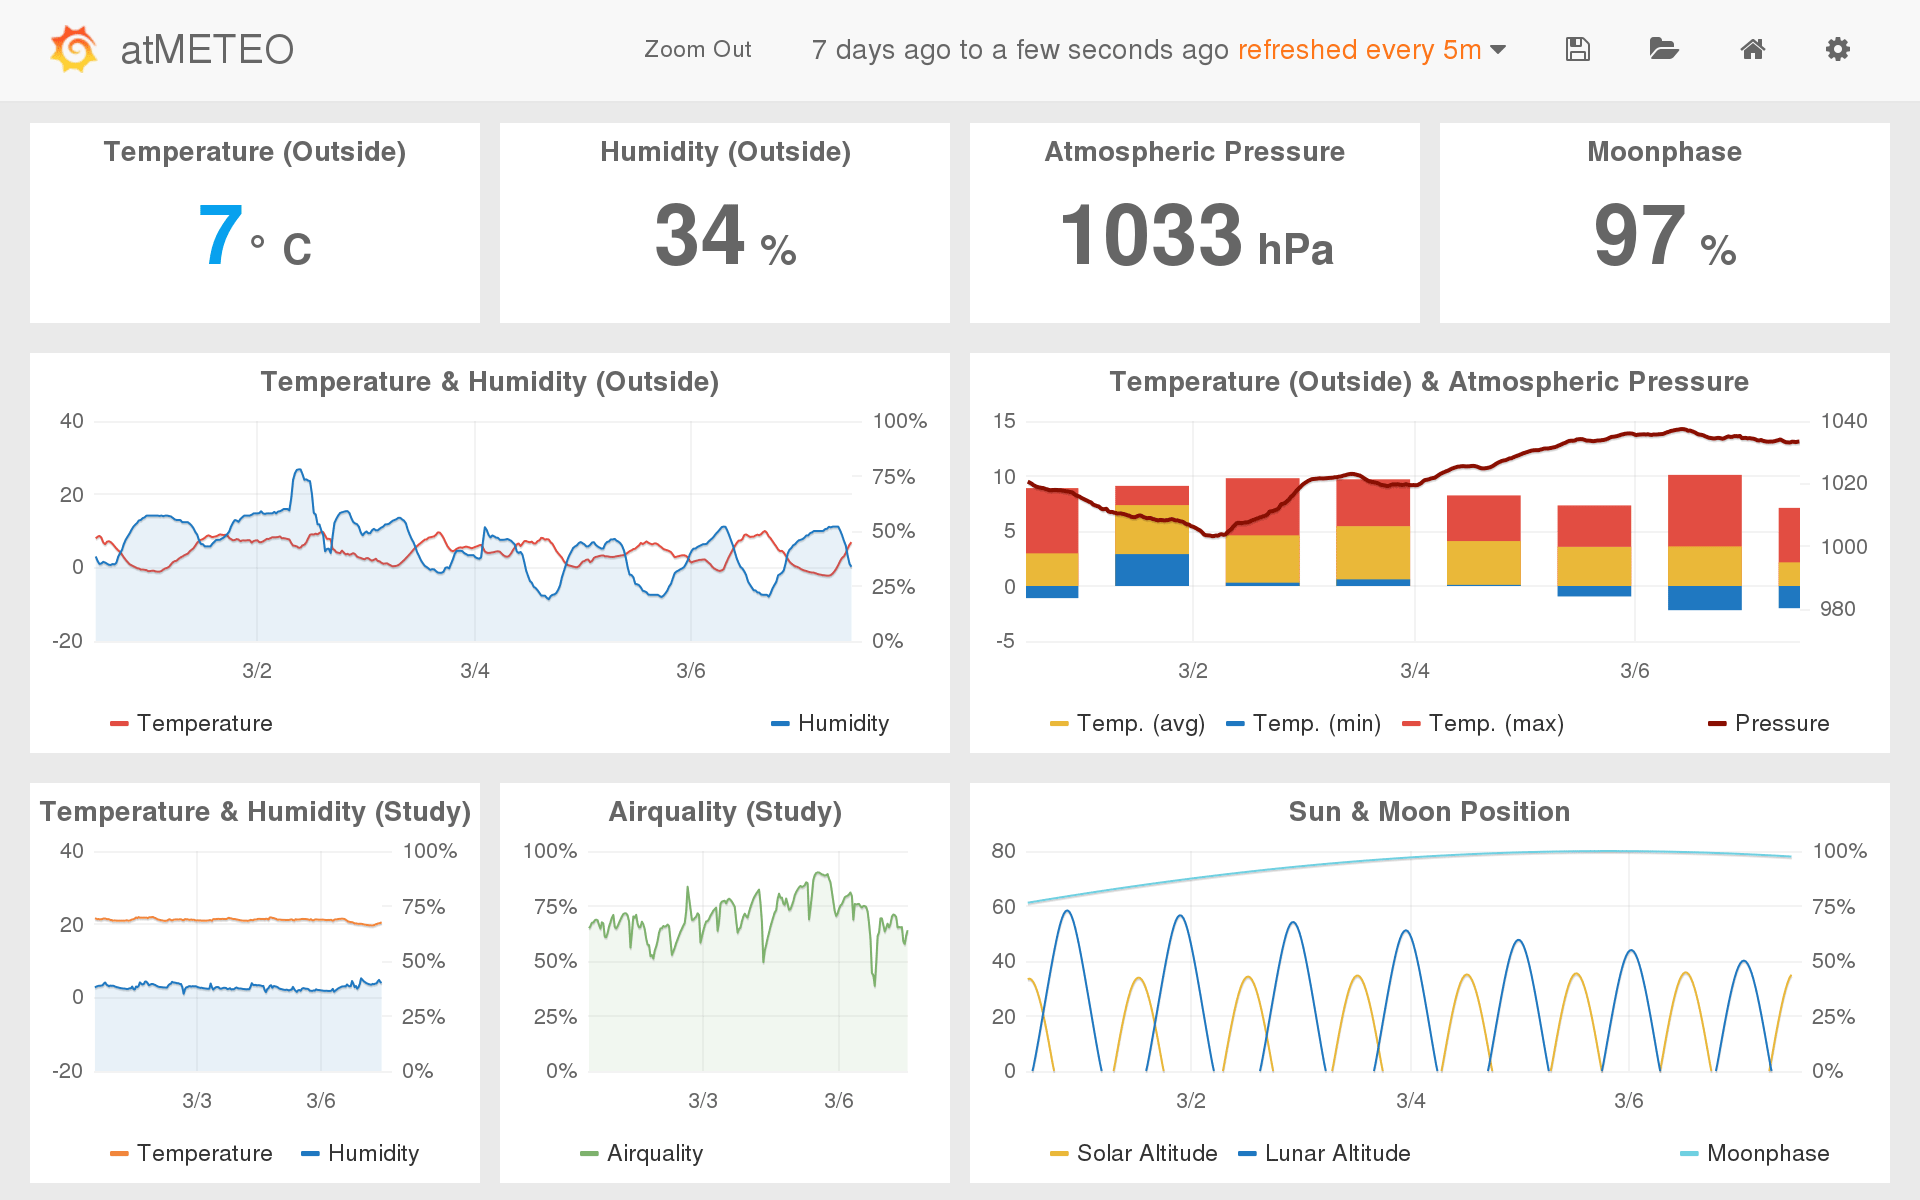 Grafana screenshot showing data from atMETEO